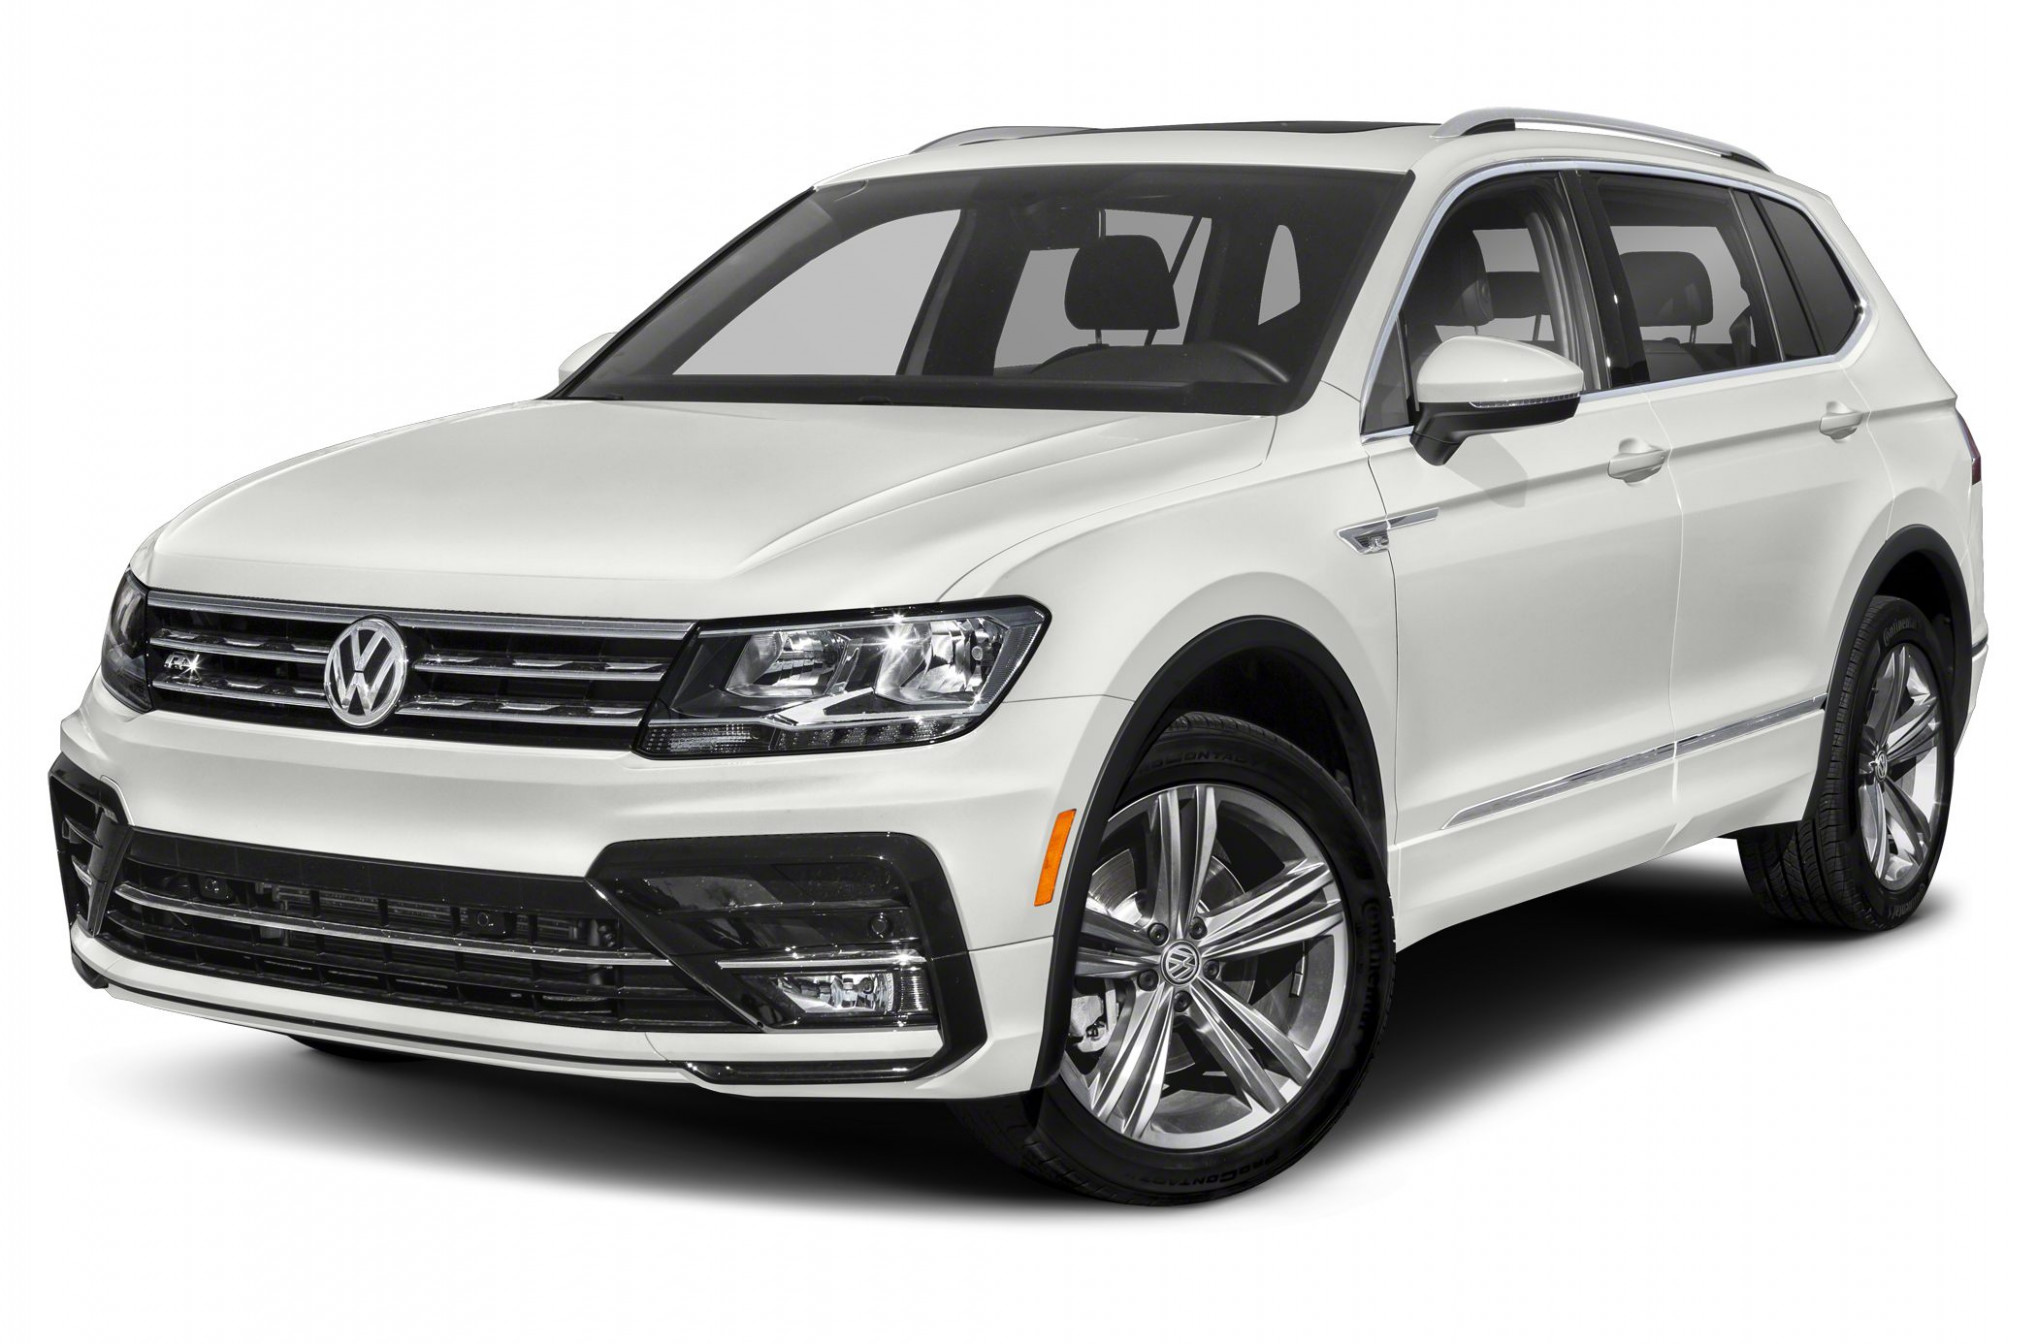 11 Volkswagen Tiguan 11.11T SE R-Line Black 11dr All-wheel Drive 11MOTION  Specs and Prices